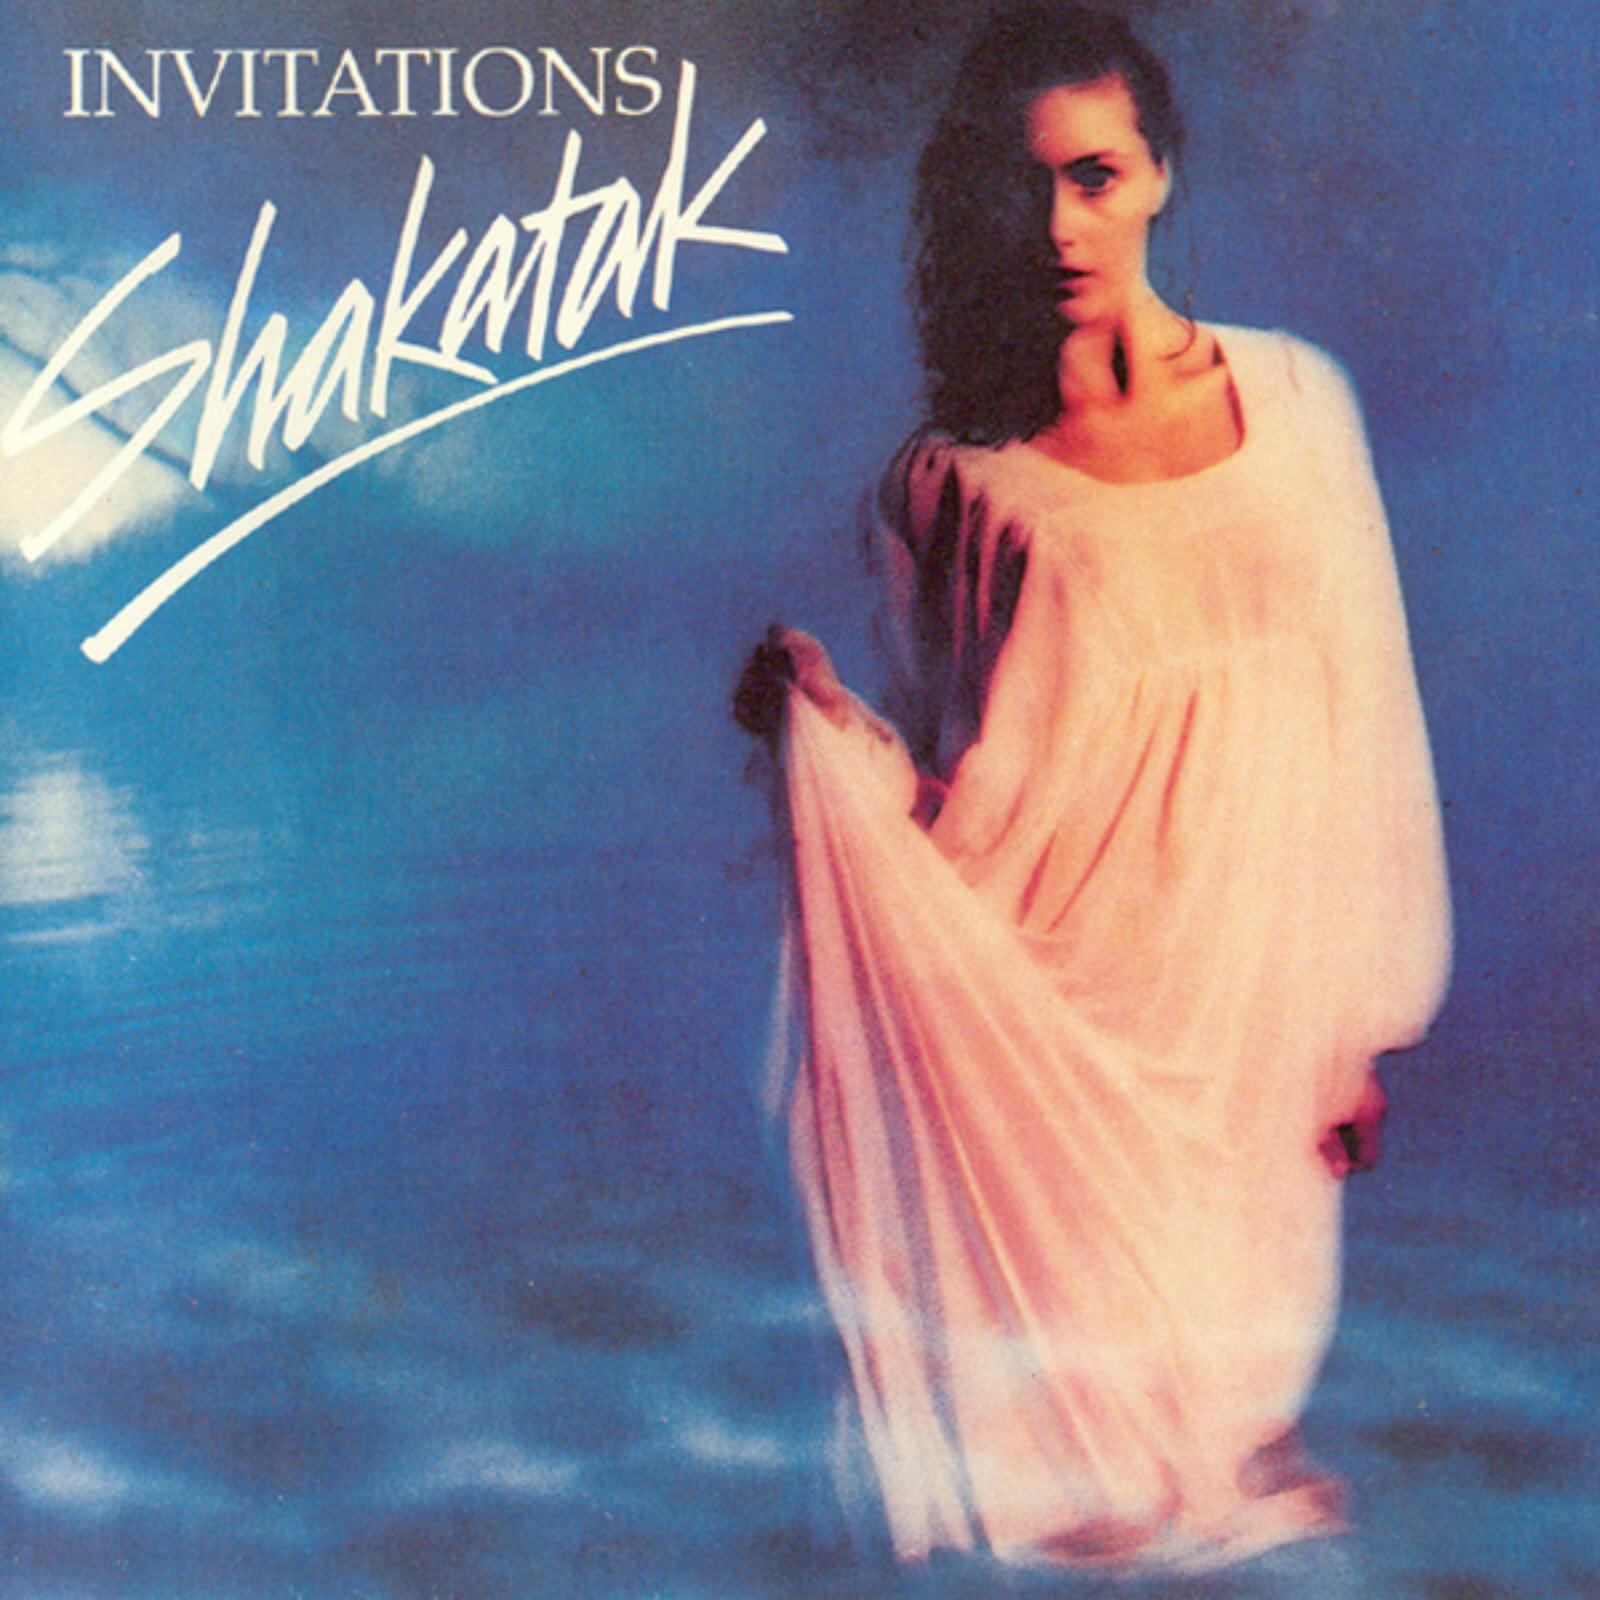 Shakatak Invitations Vinyl